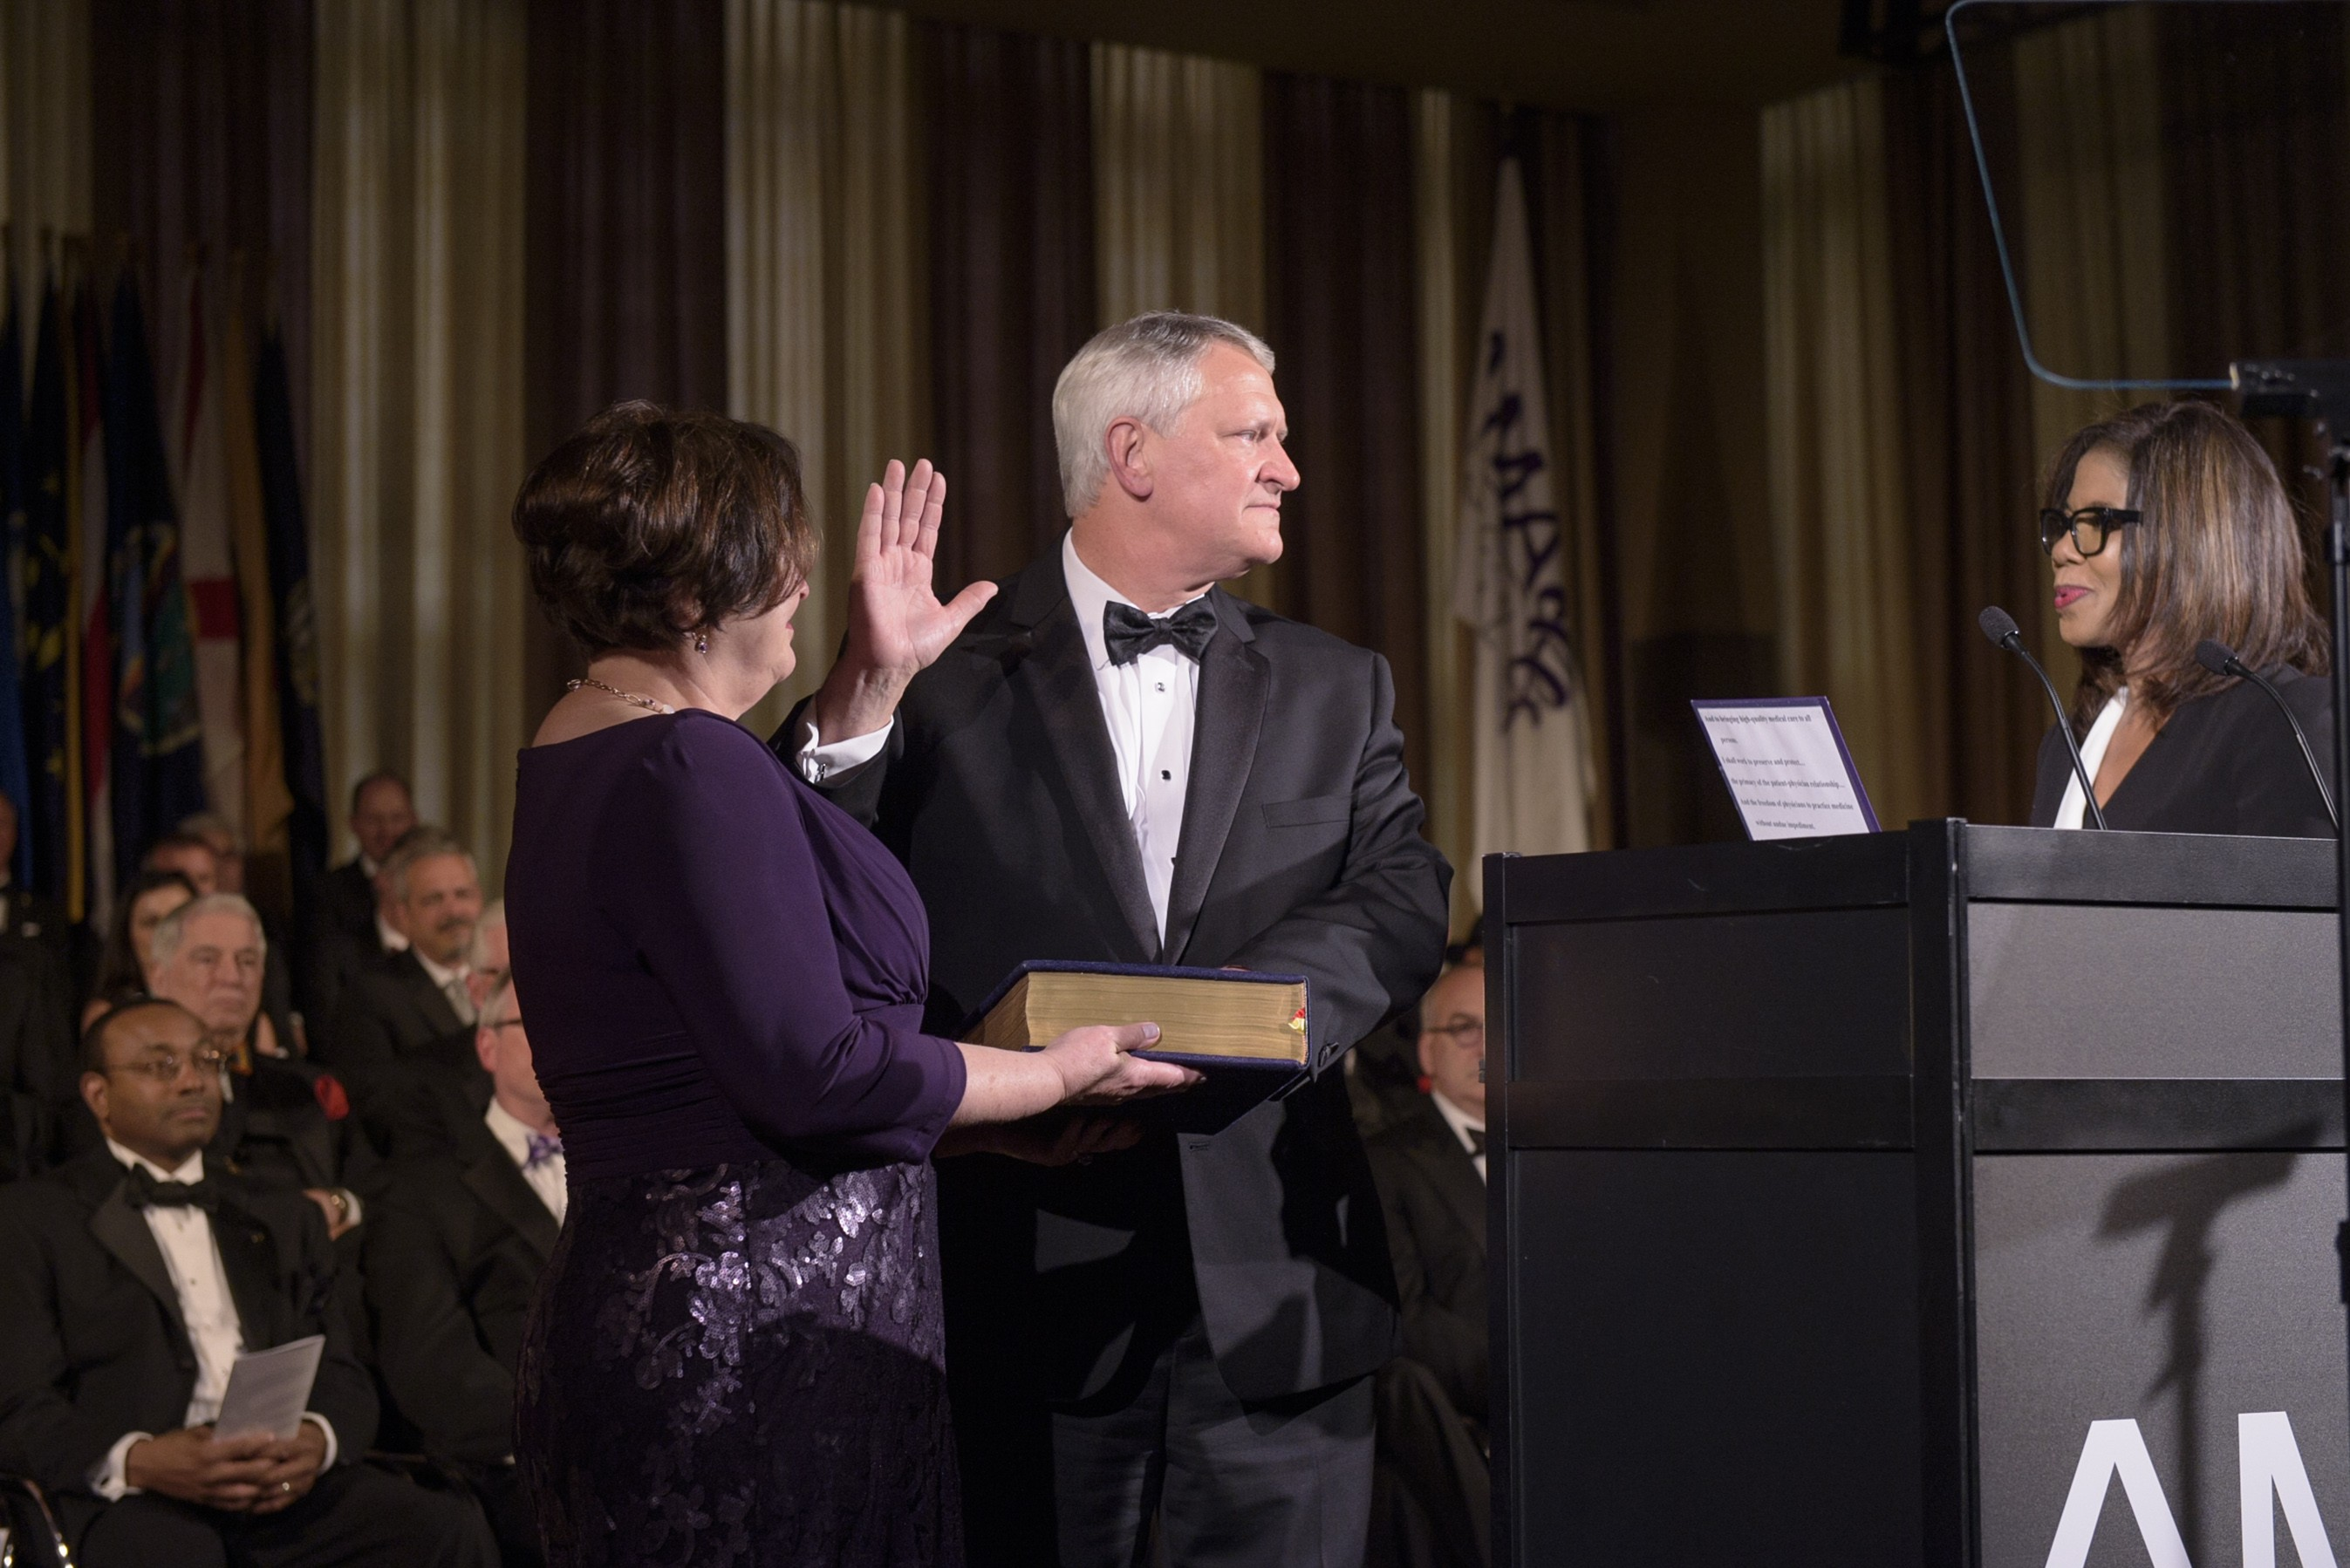 Dr. David Barbe, a Mercy physician from Mountain Grove, Missouri, takes the oath of office as the new president of the American Medical Association. His wife, Debbie, holds the Bible.